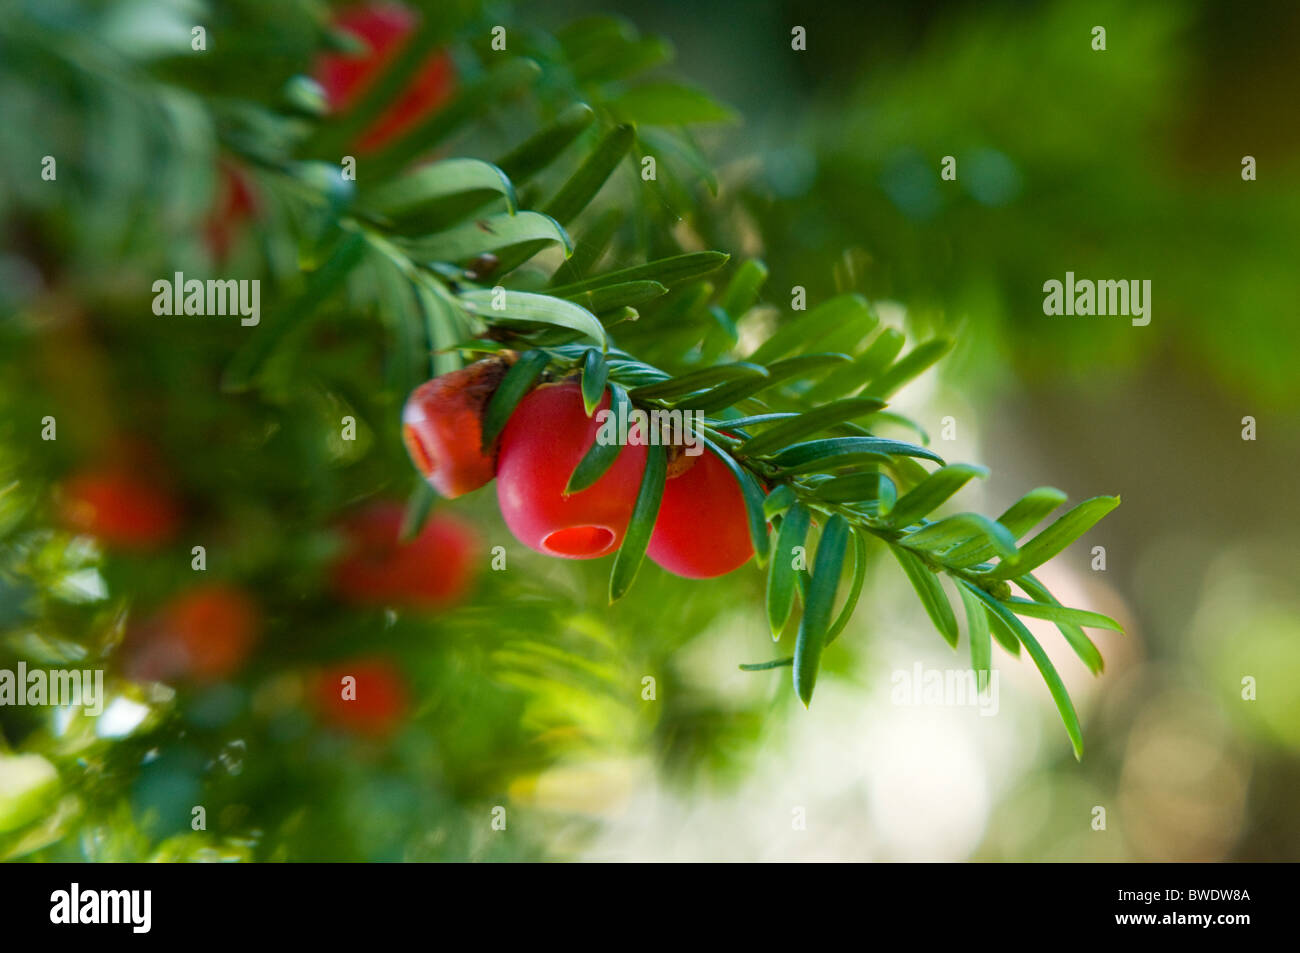 The bright red winter berries of Taxus baccata - Yew tree - Stock Image